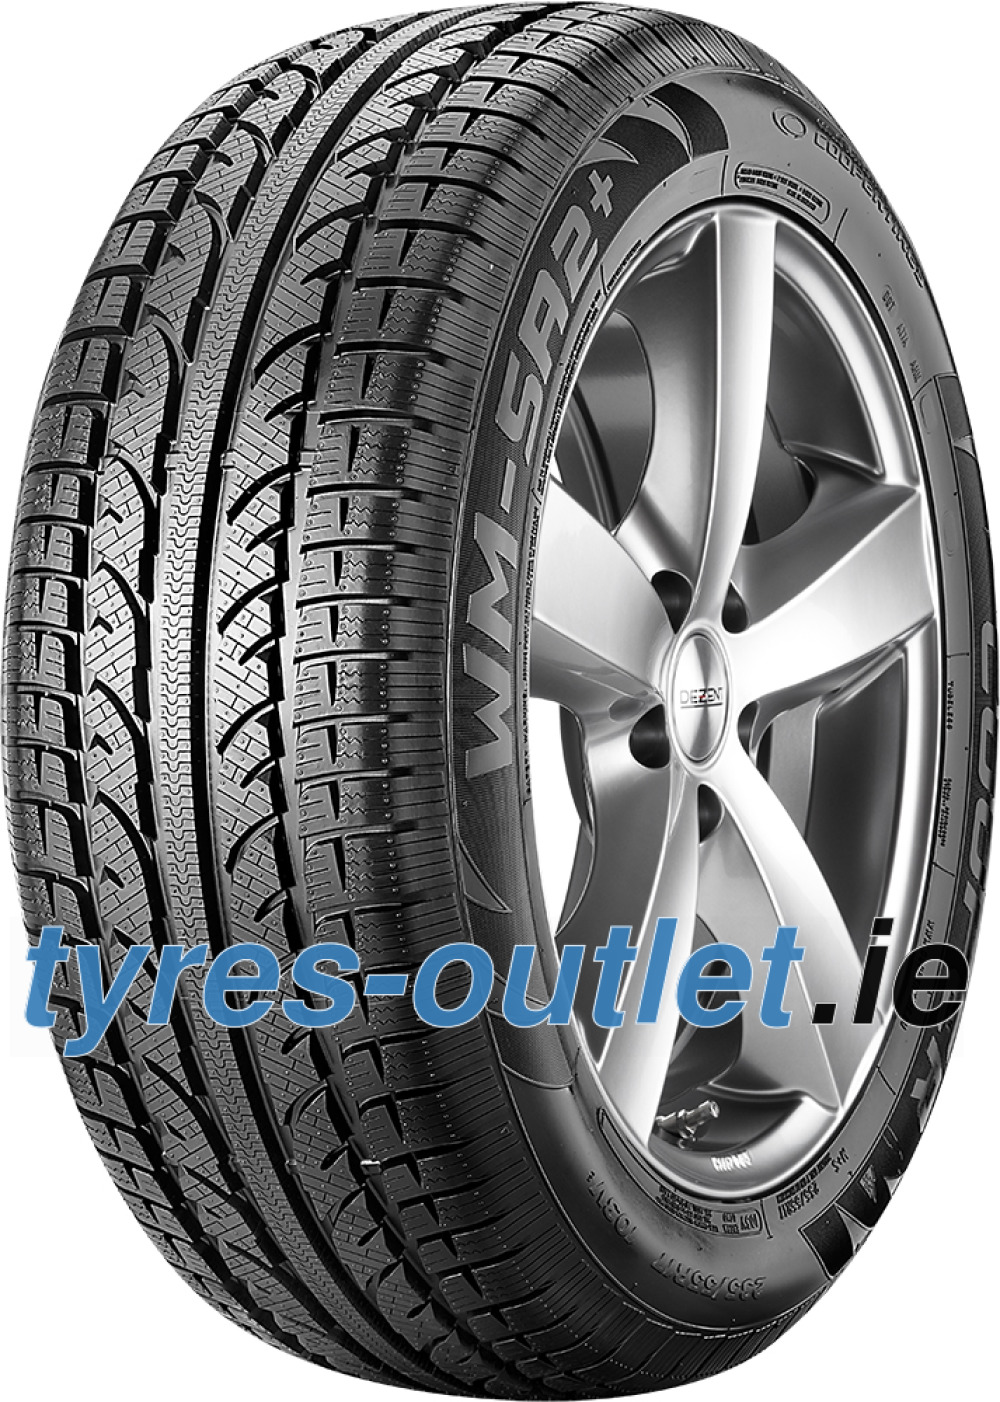 Cooper Weather-Master SA2 + ( 245/40 R18 97V XL , with Rim flange protection )